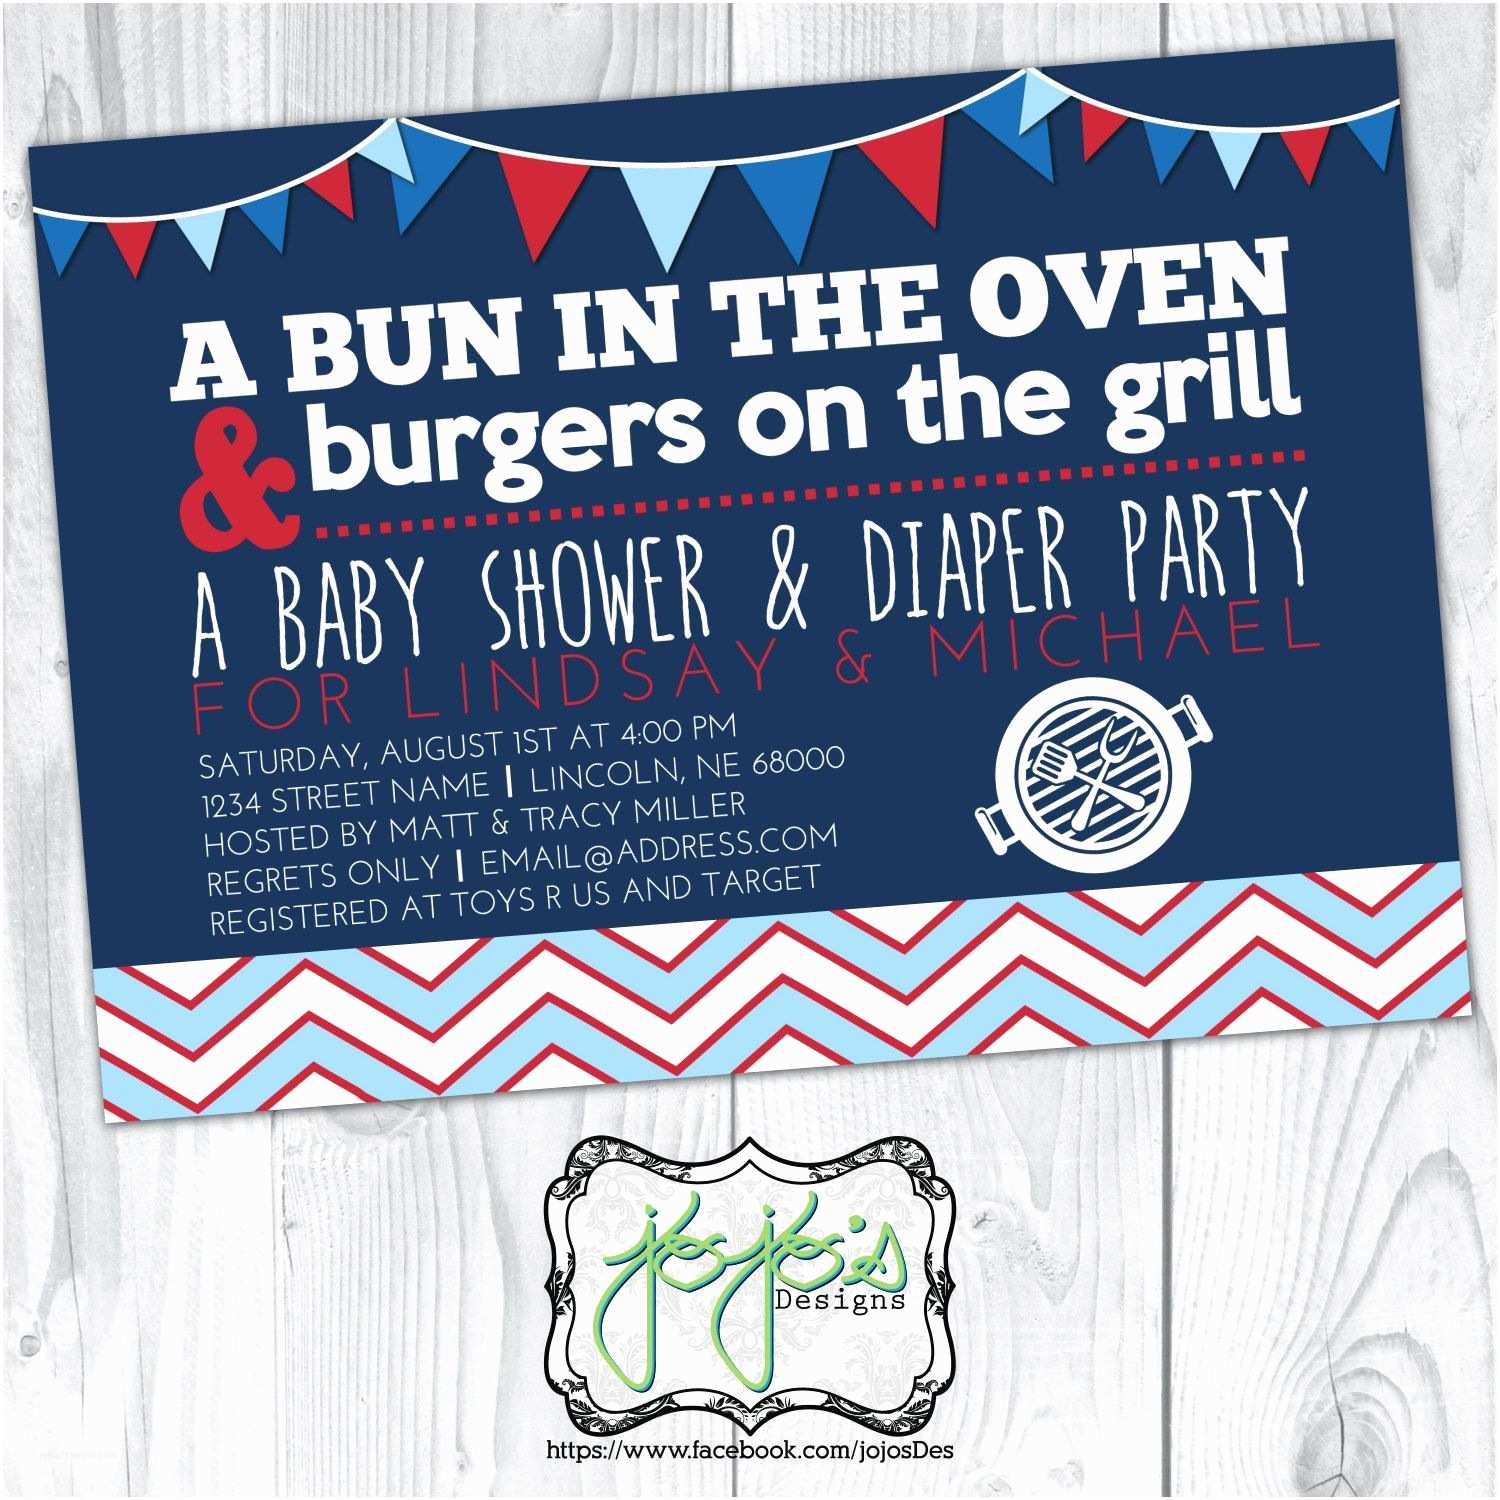 Diaper Party Invitations Bun In the Oven Burgers On the Grill Baby Shower and